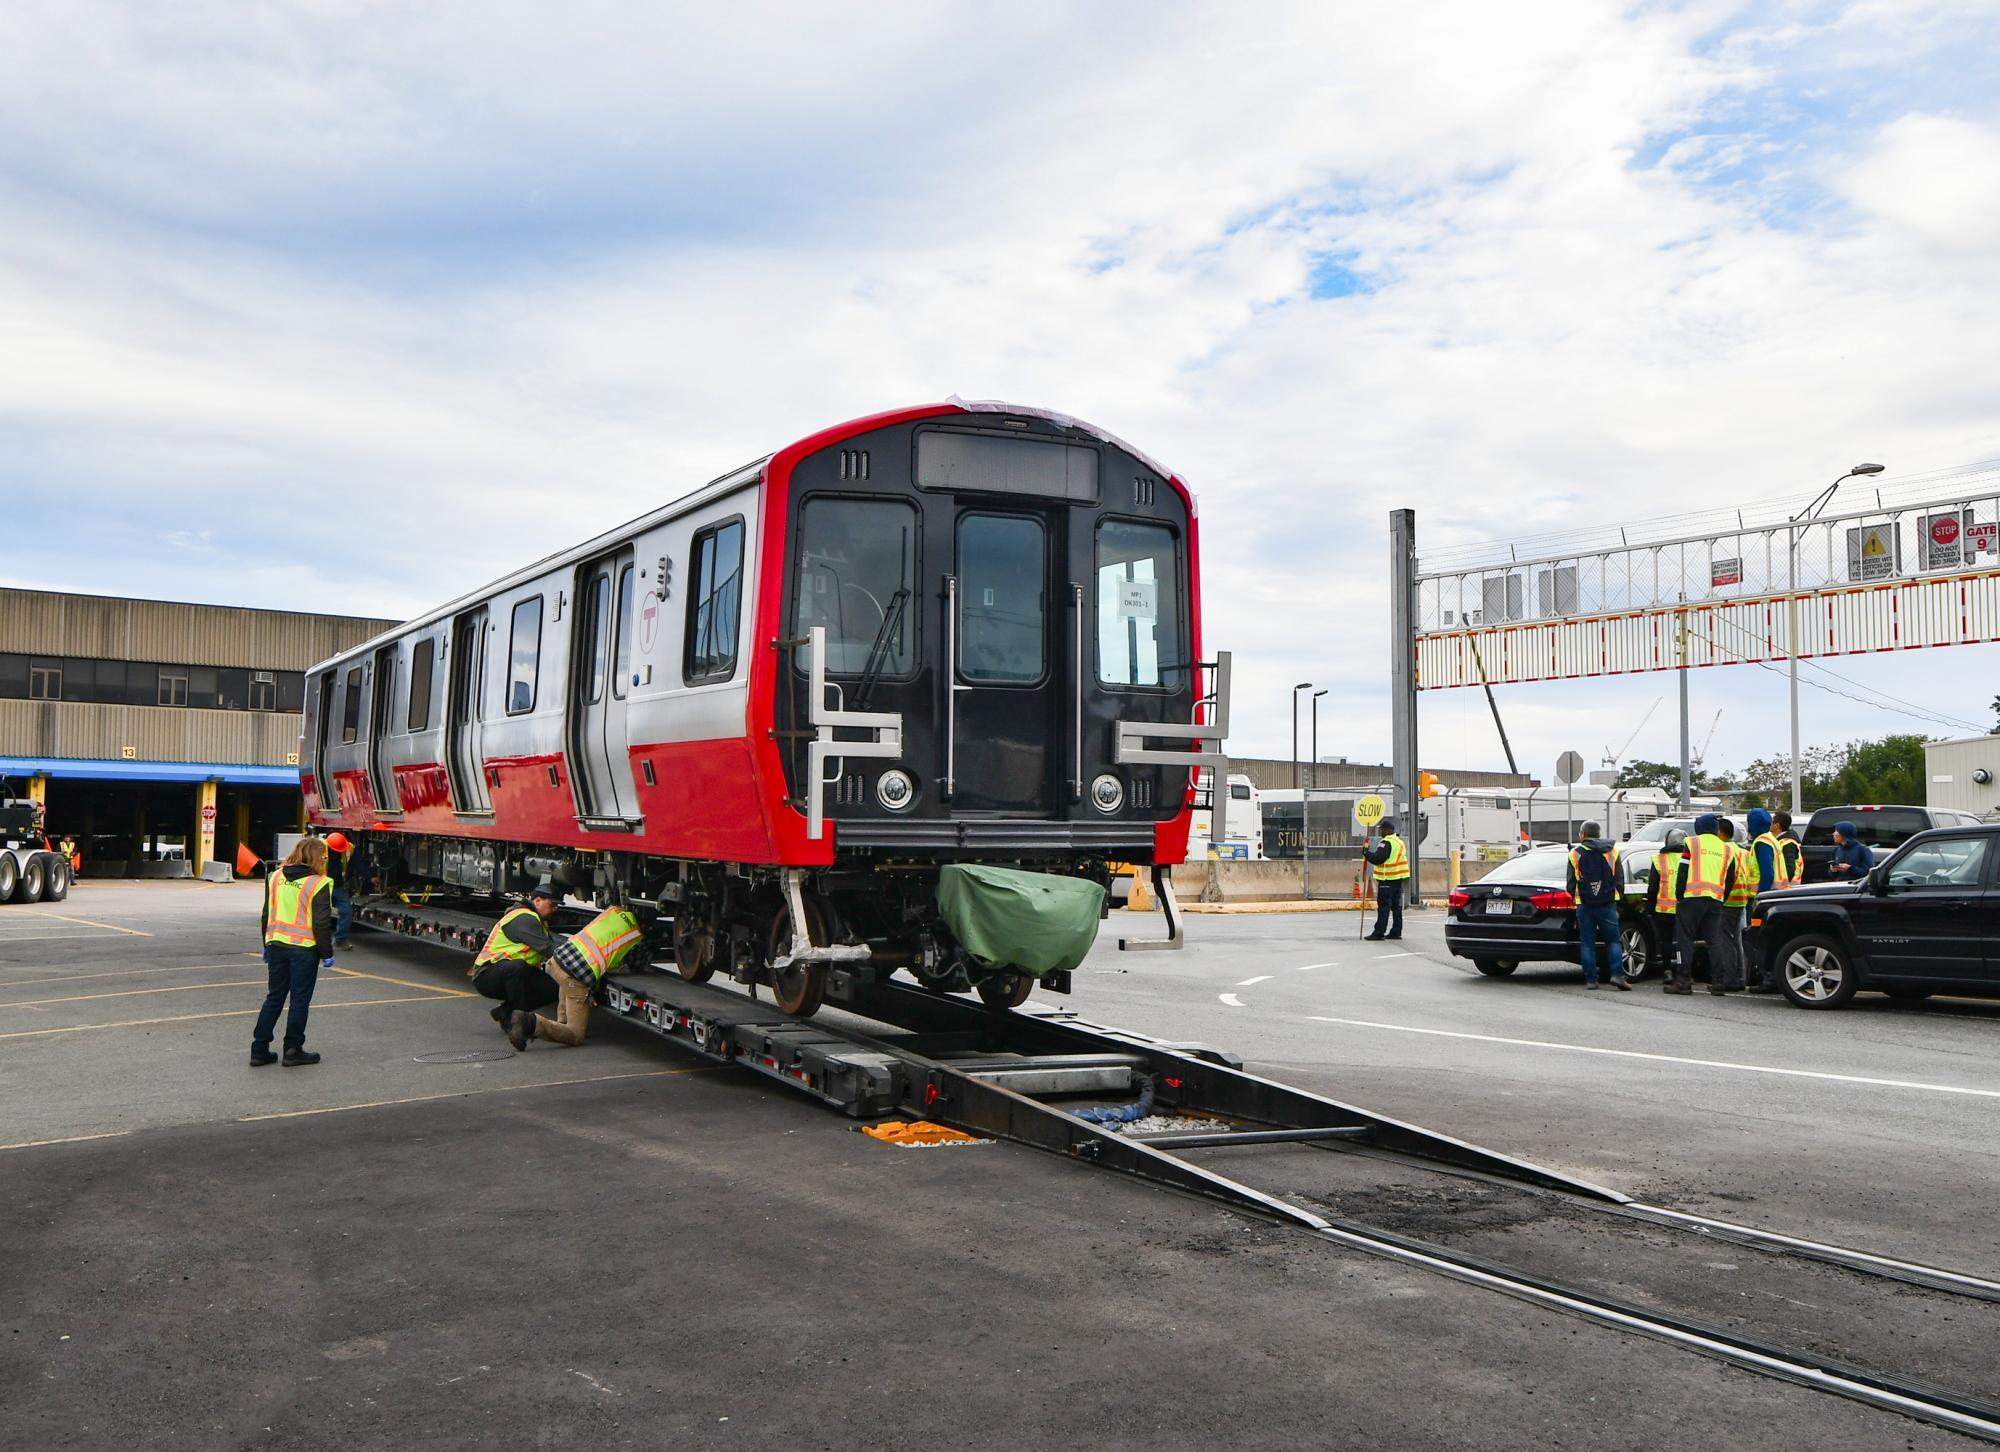 Red Line car being delievered to Cabot Yard, with MBTA workers helping to get it off the trailer.